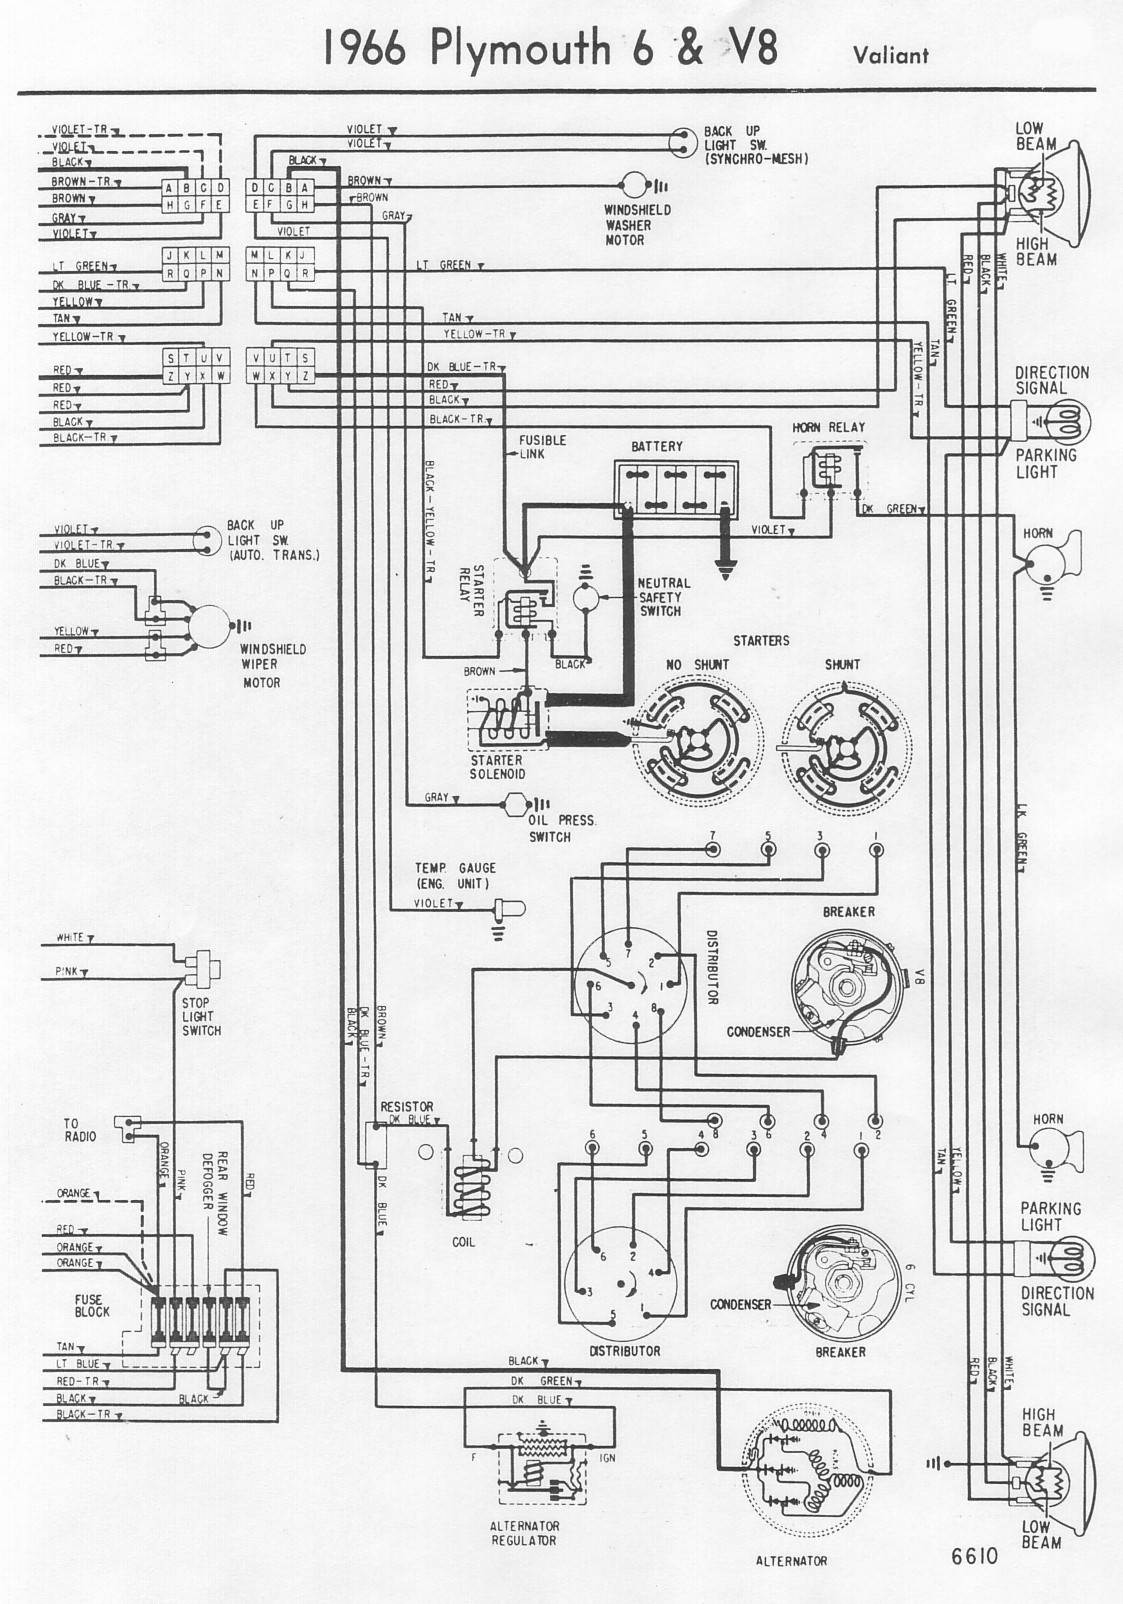 honda rancher 350 wiring diagram   32 wiring diagram